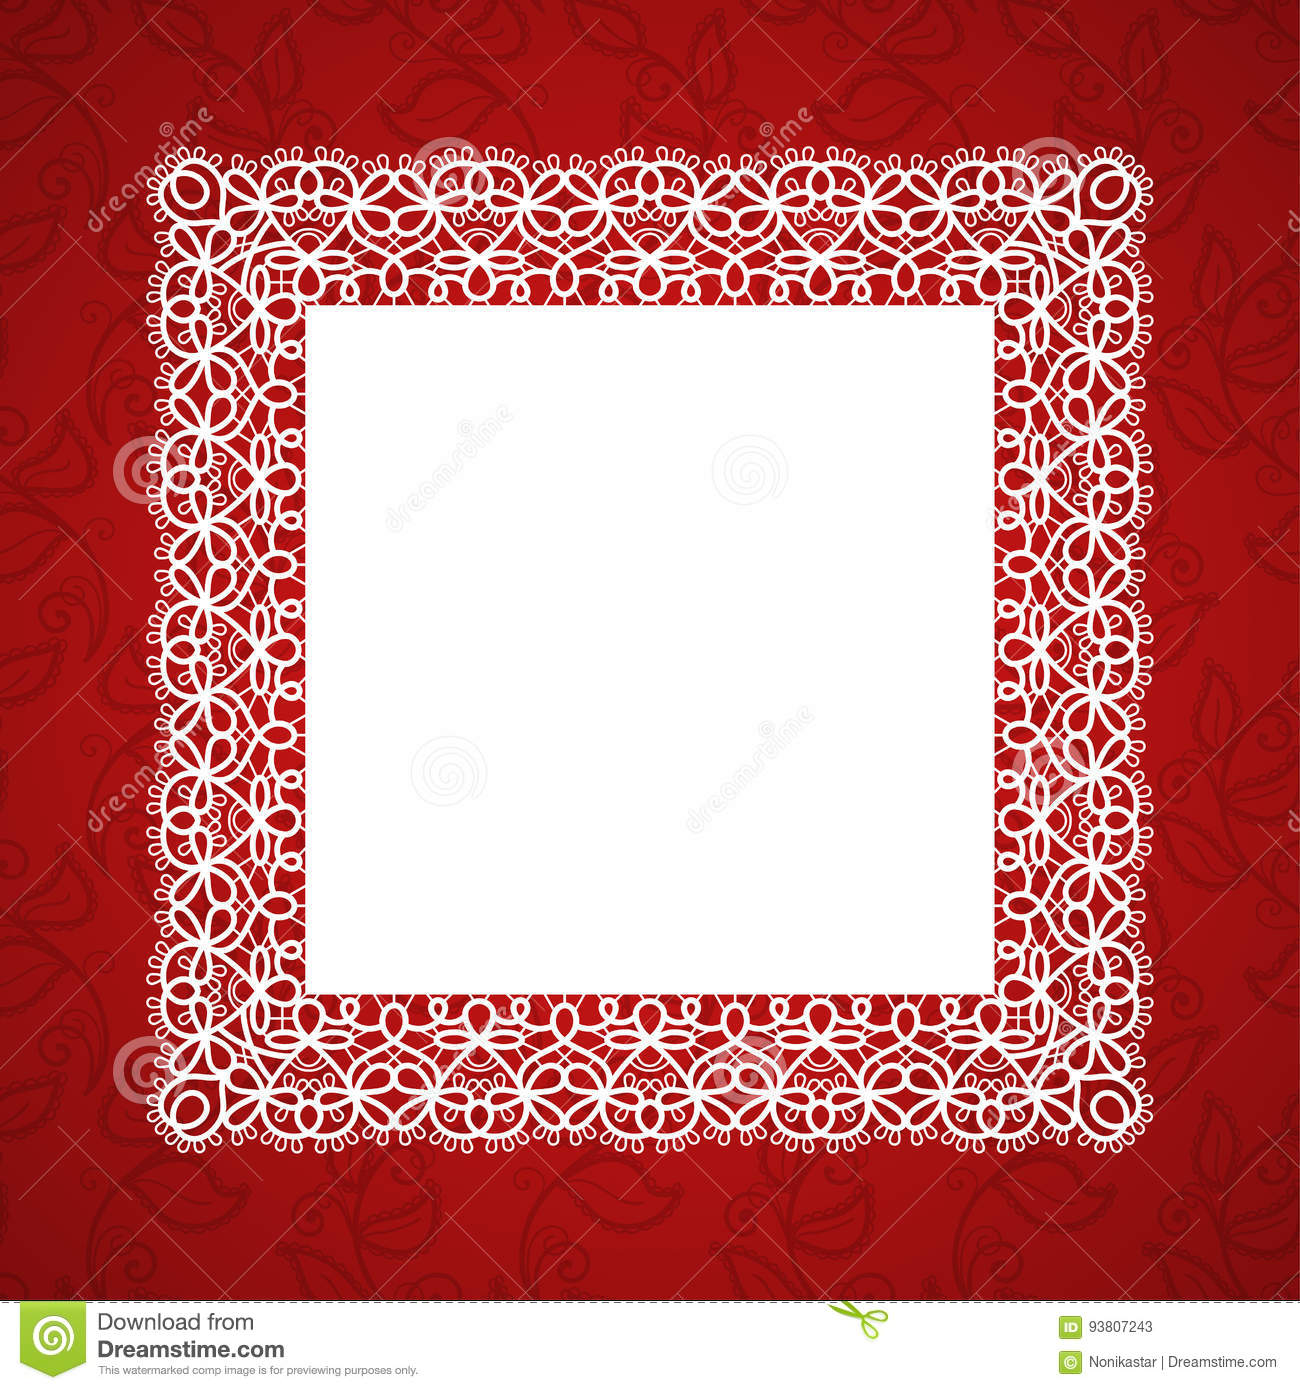 Lace square frame stock vector. Illustration of embroidery - 93807243